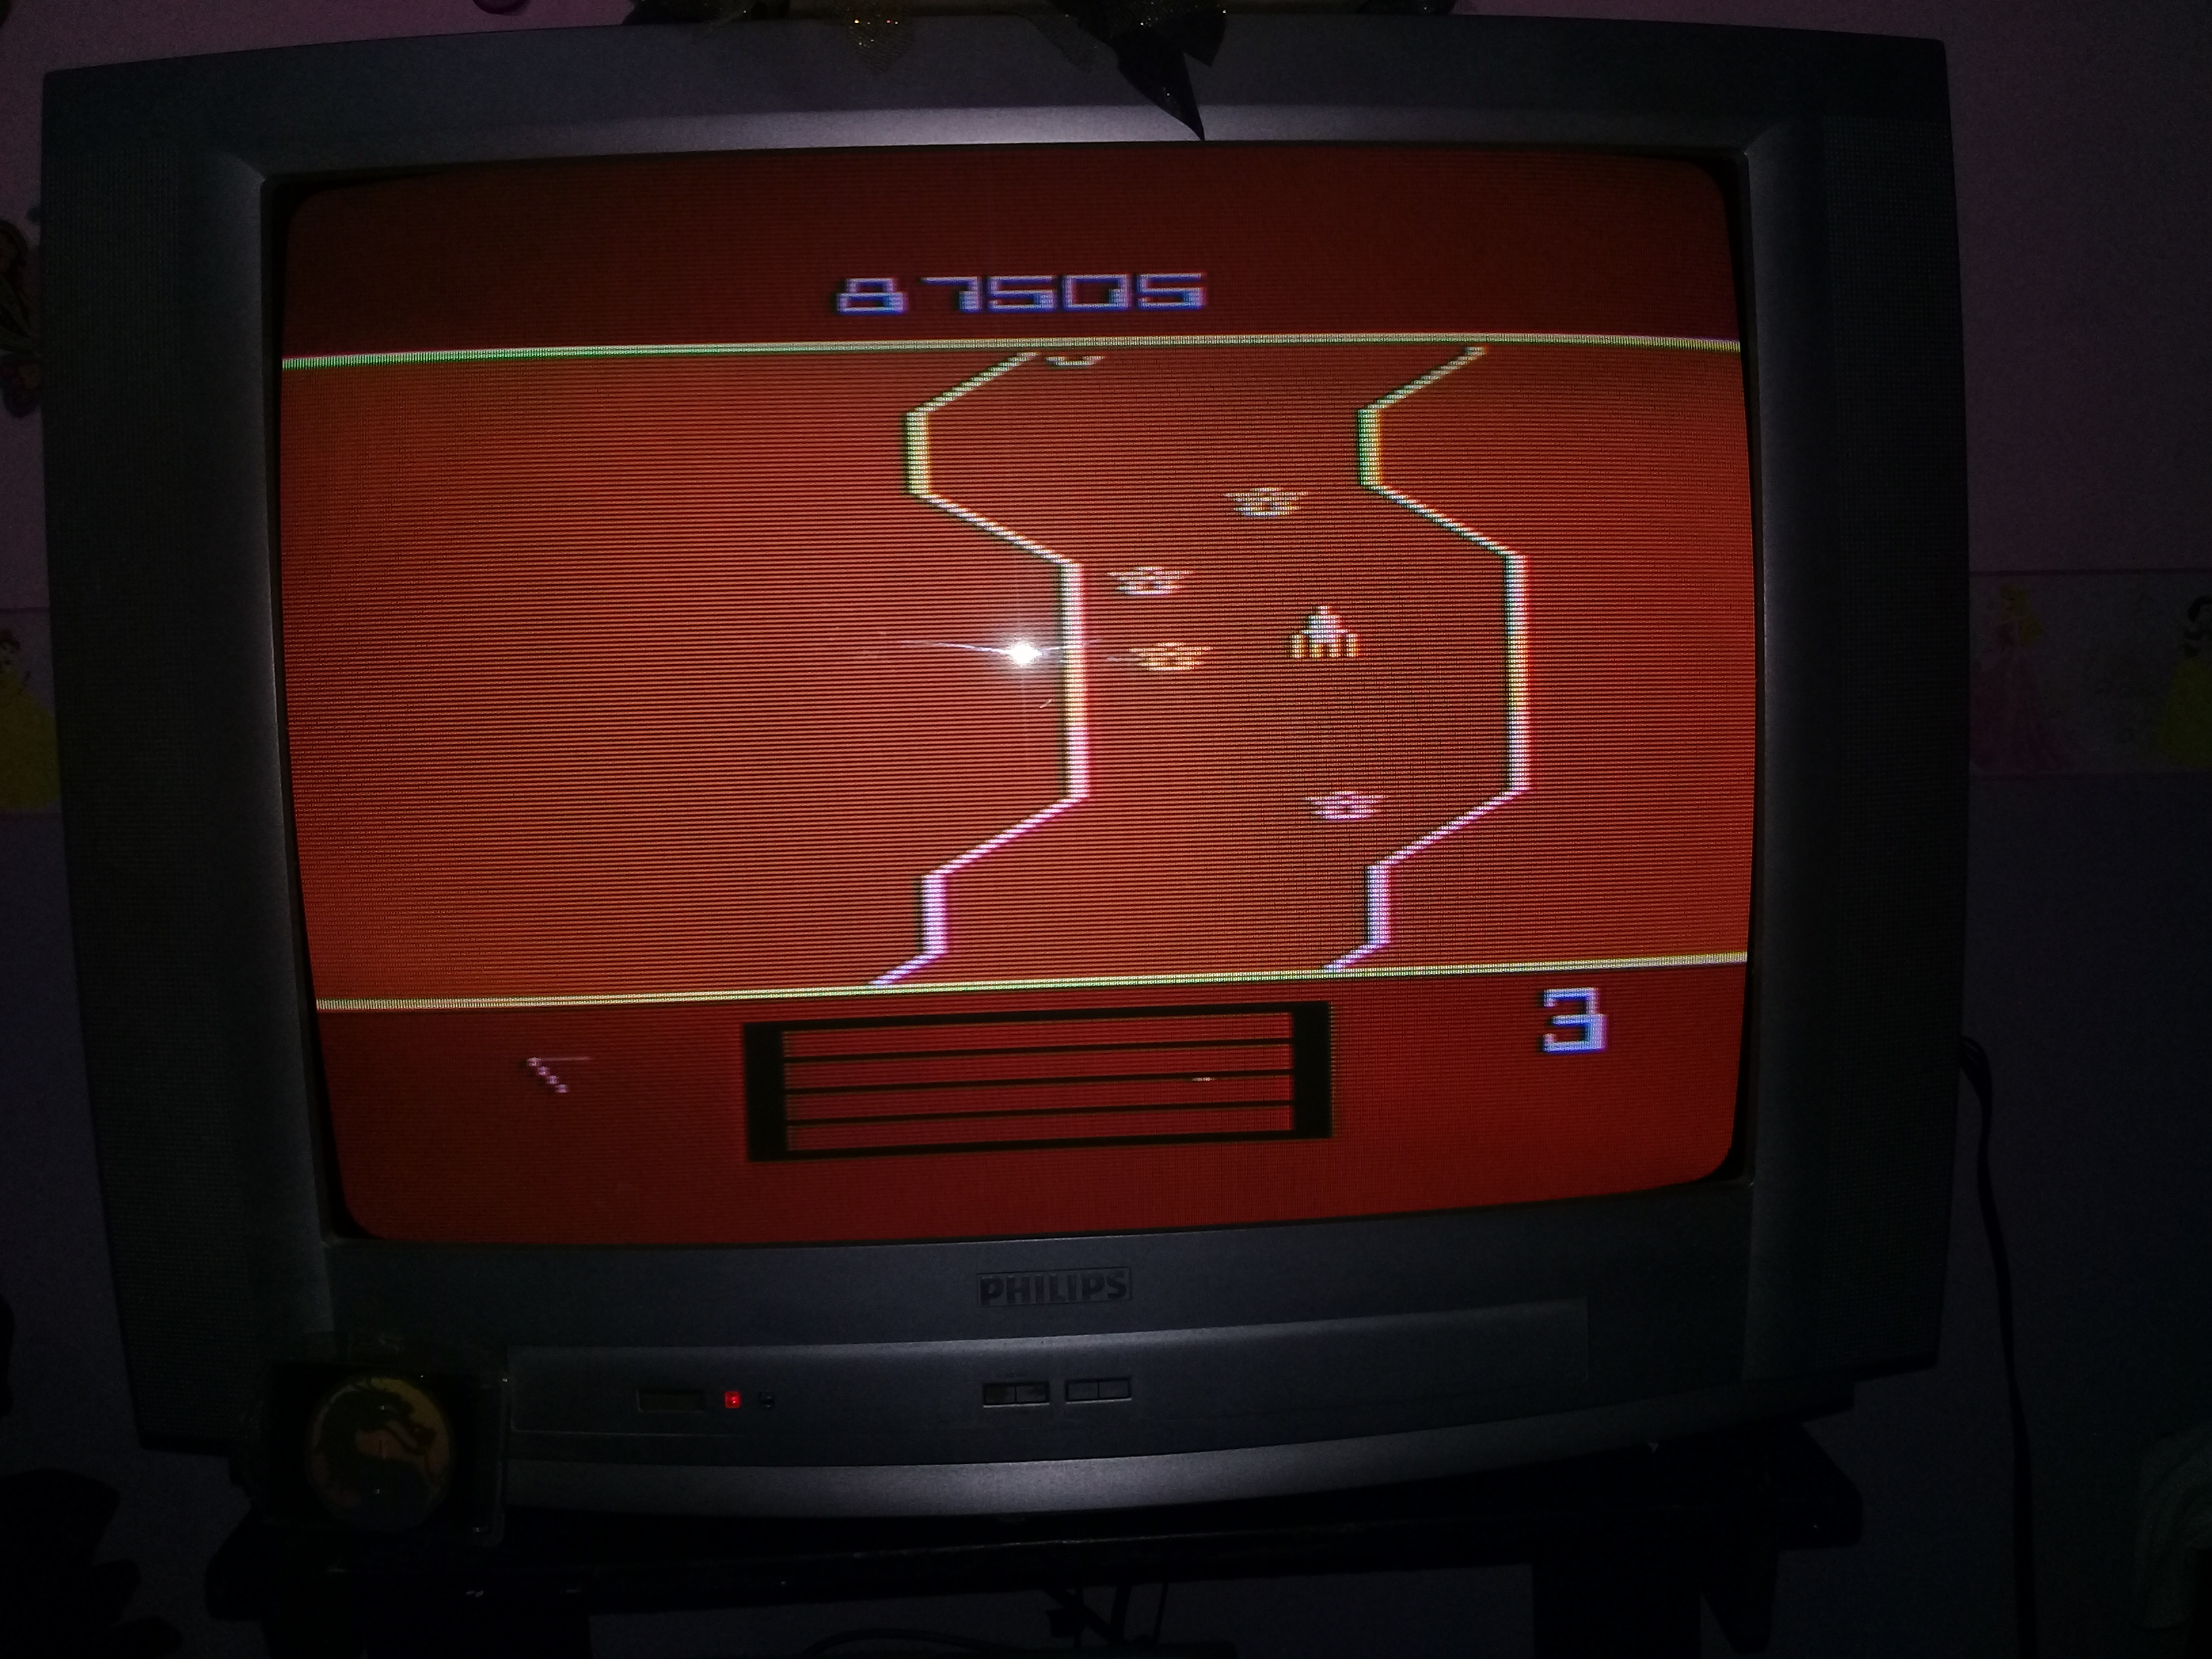 omargeddon: Fantastic Voyage (Atari 400/800/XL/XE) 87,505 points on 2020-03-08 11:17:08